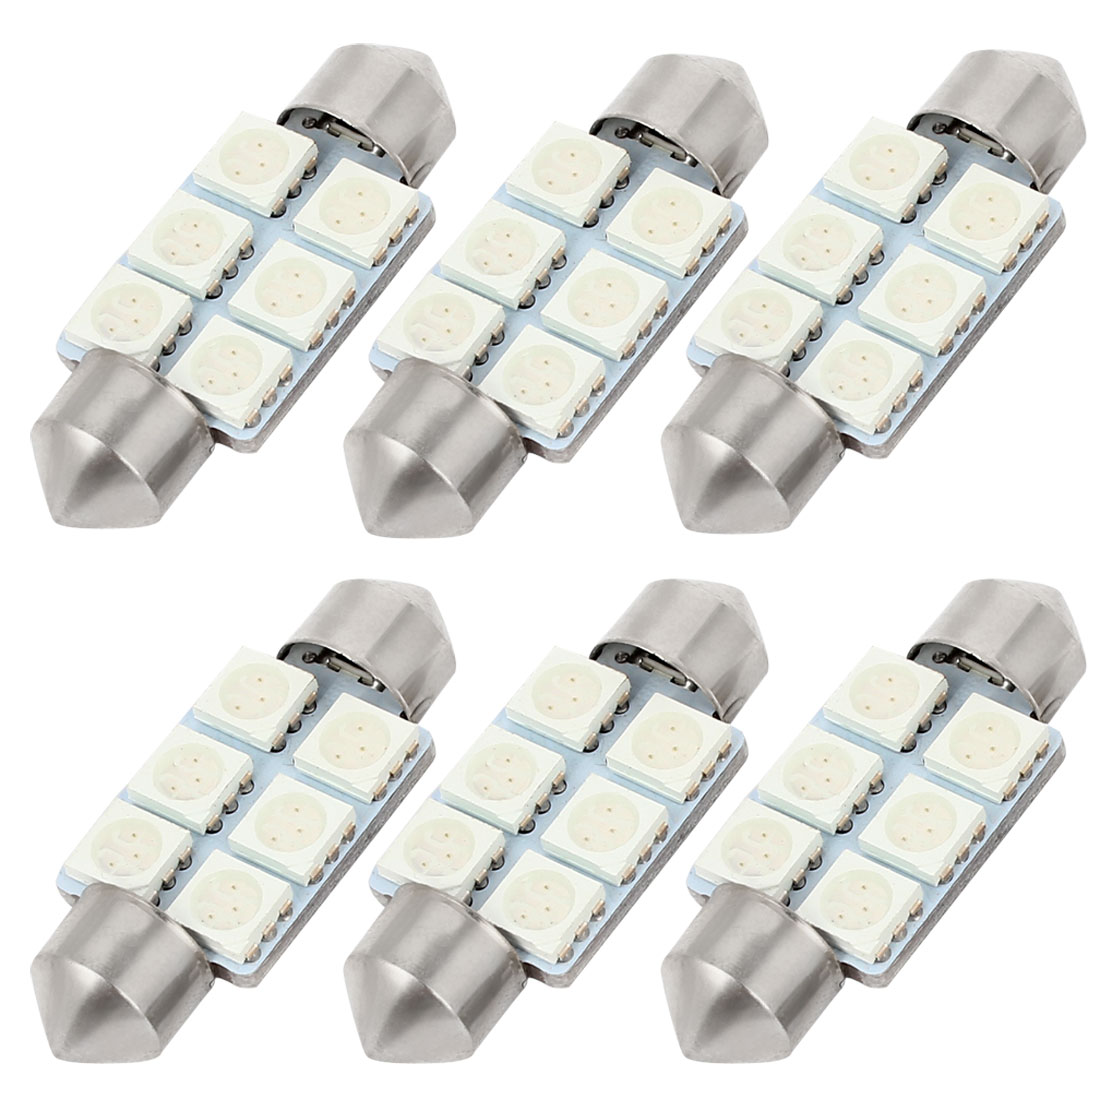 6pcs 36mm 6LED 5050 SMD Green Festoon Dome Light Bulbs DE3423 6461 Internal